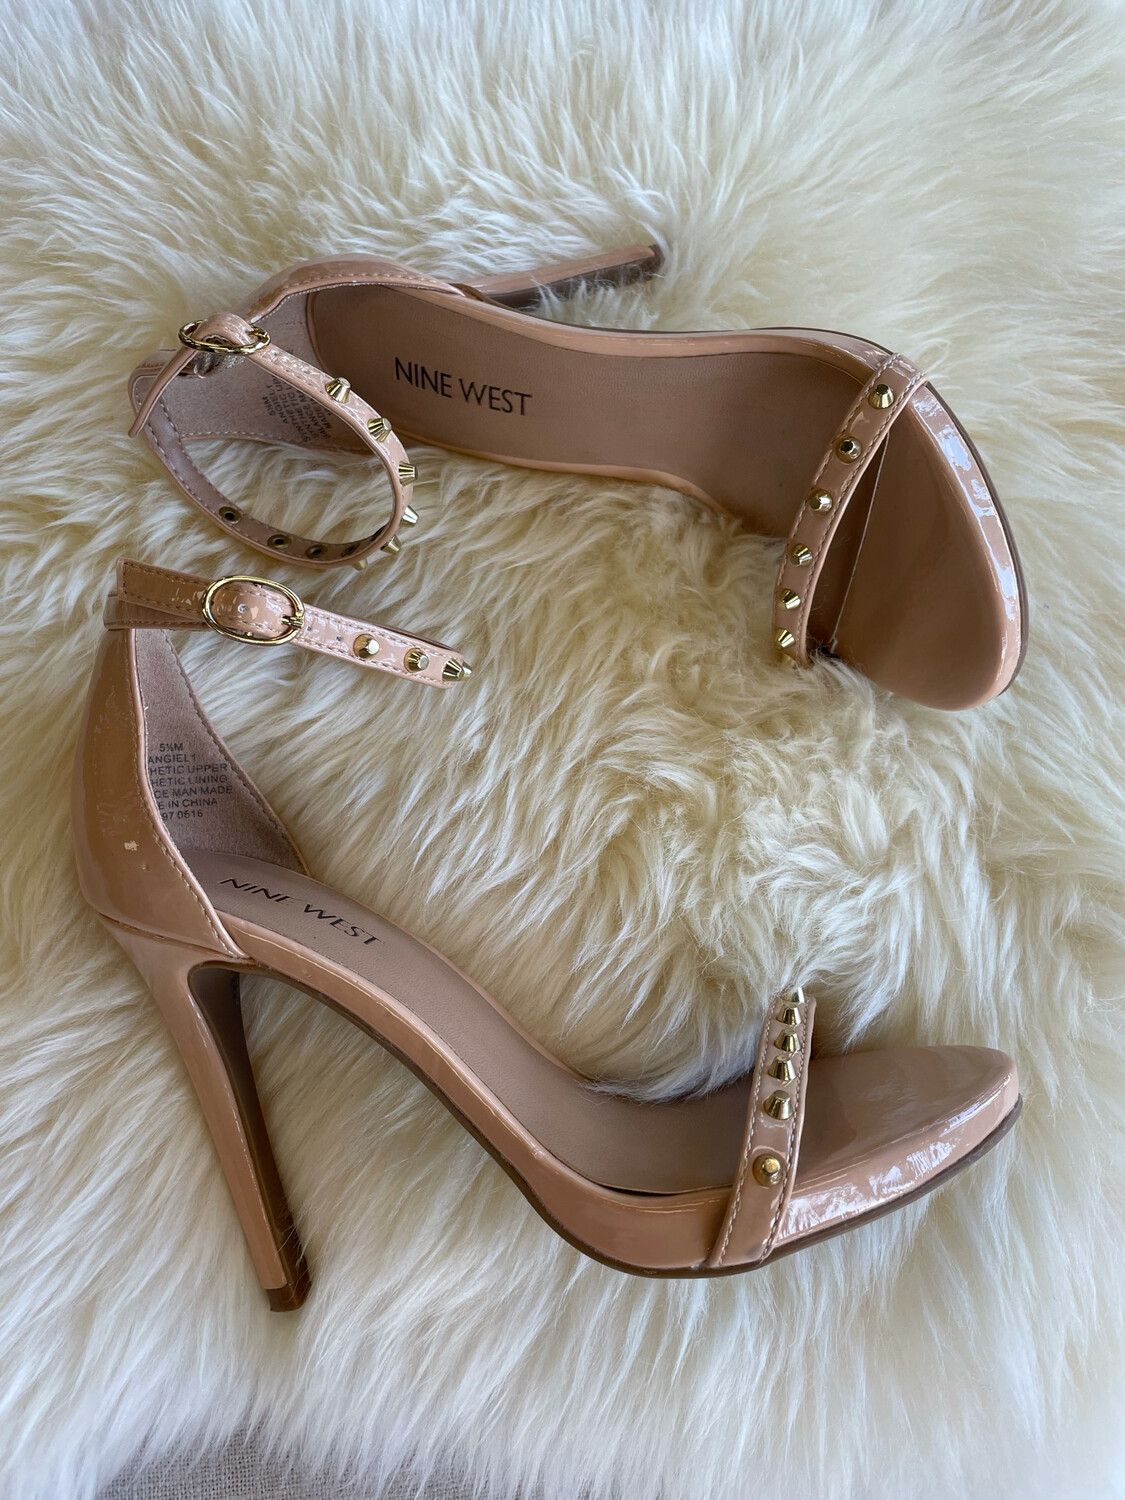 Nine West Nude Strappy Heel w/Gold Stud Accent - Size 5.5